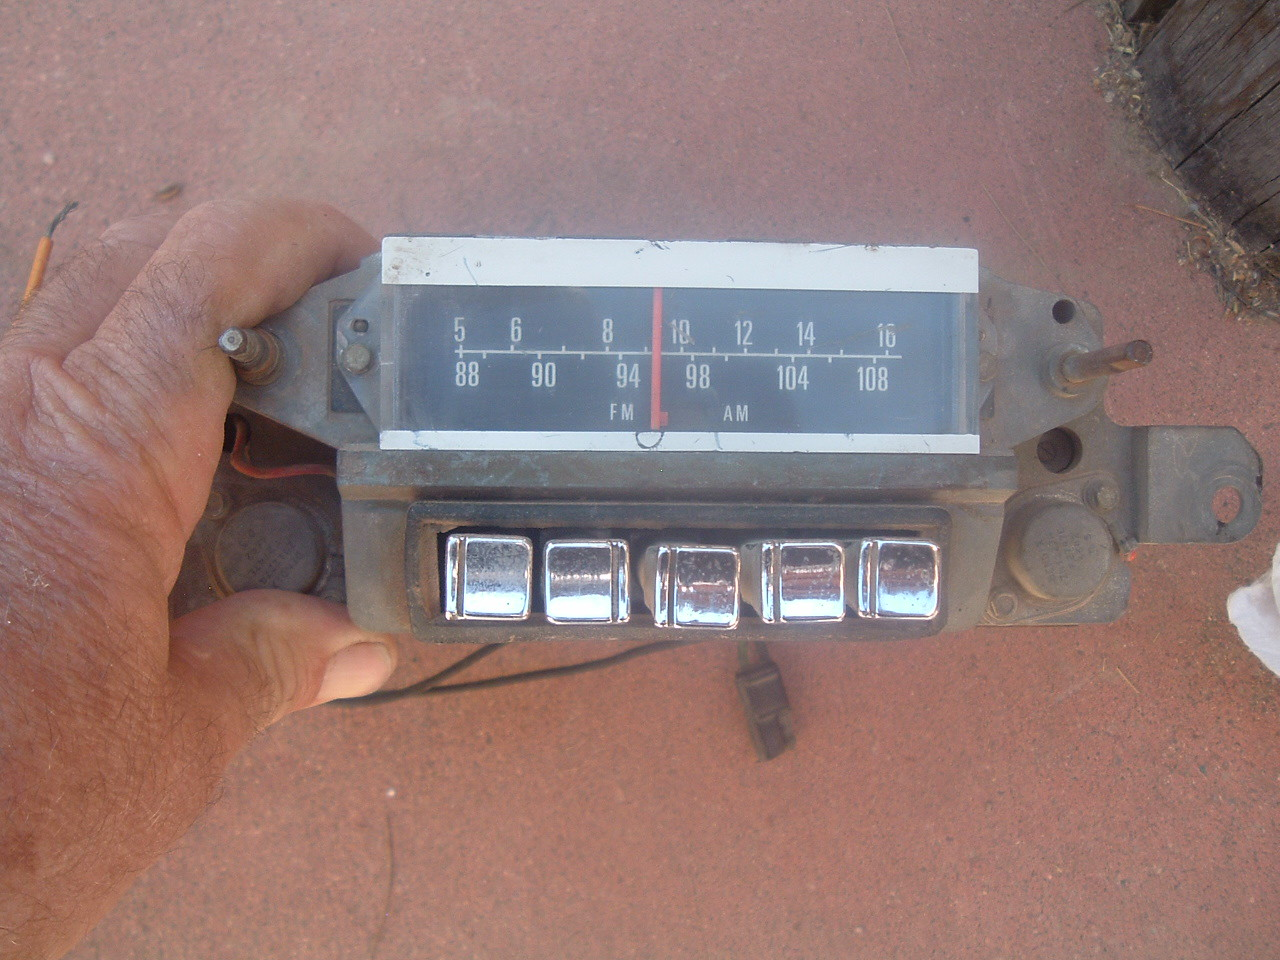 1967 ford galaxie am/fm radio original